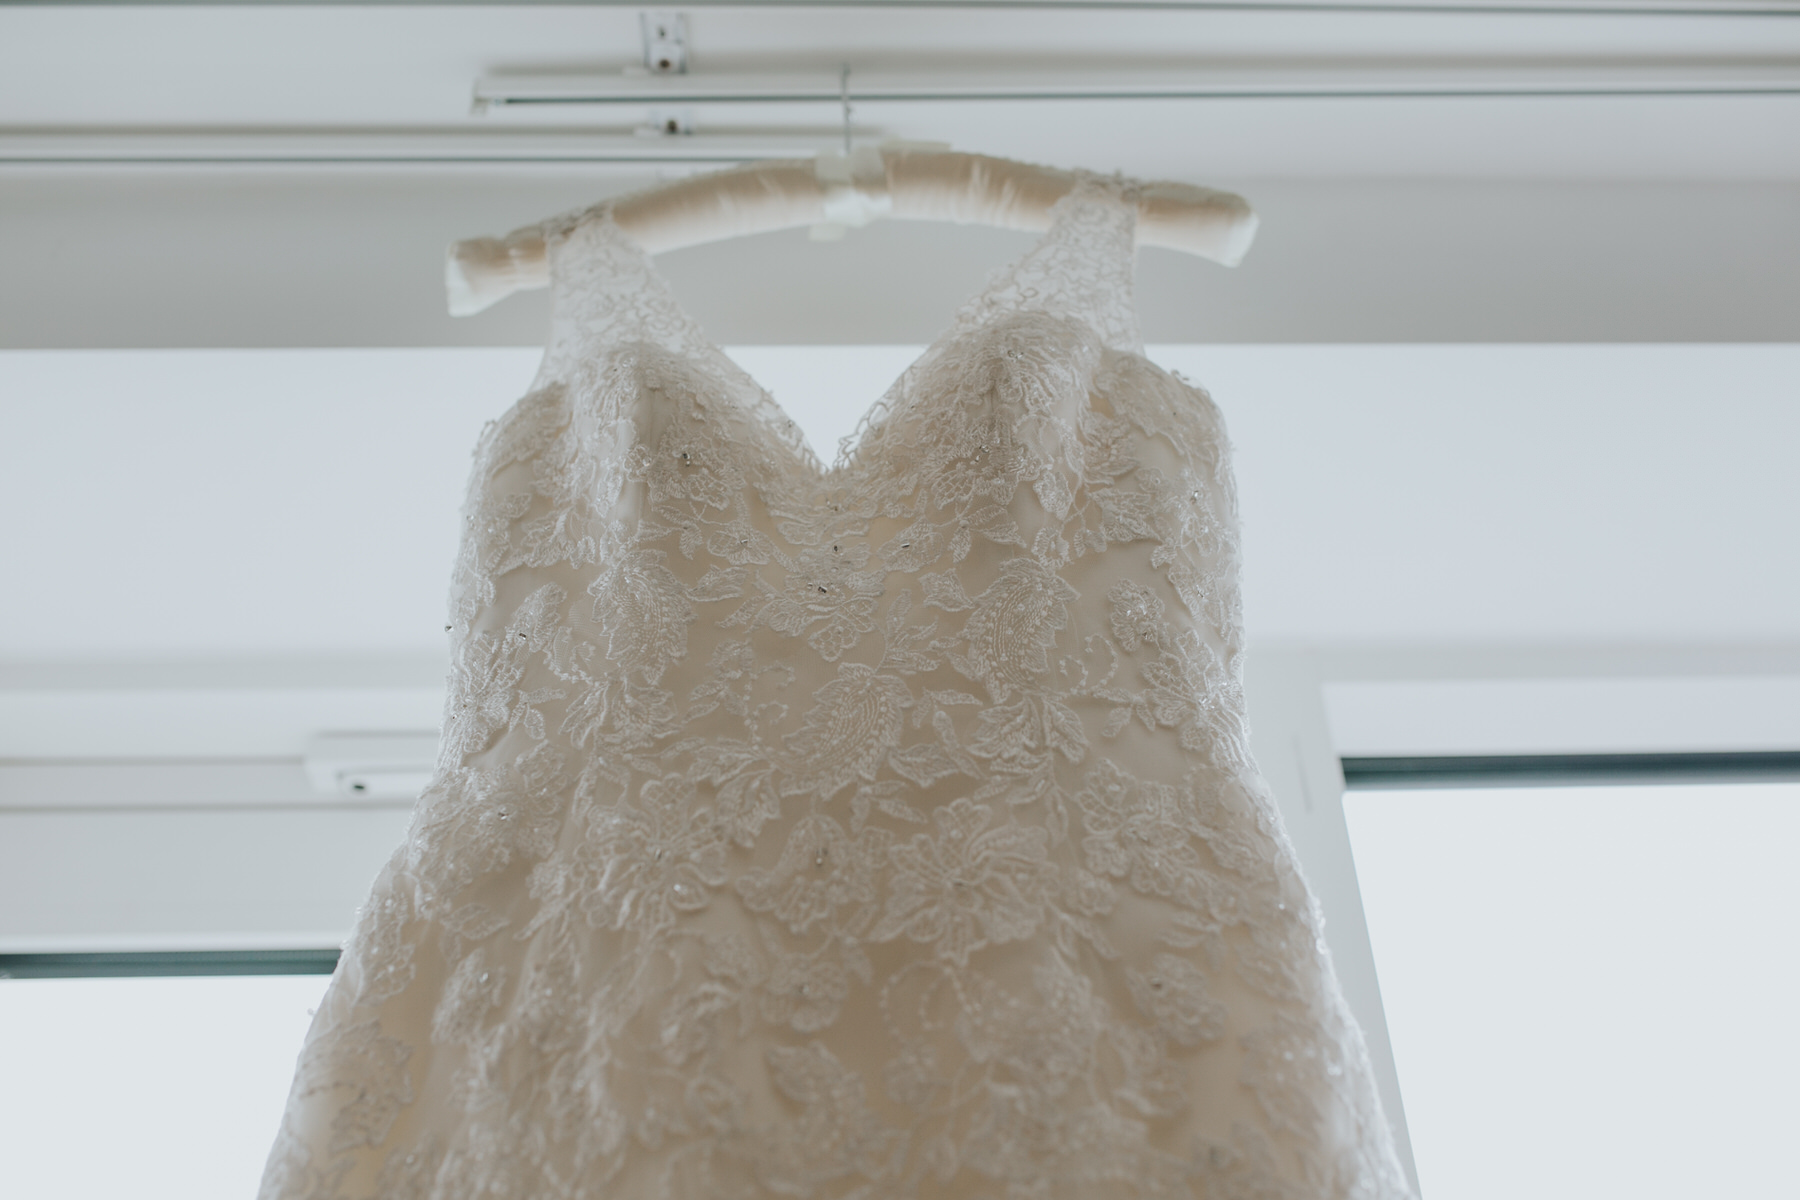 27-Maggie Sottero lace wedding dress hanging from nice hanger.jpg